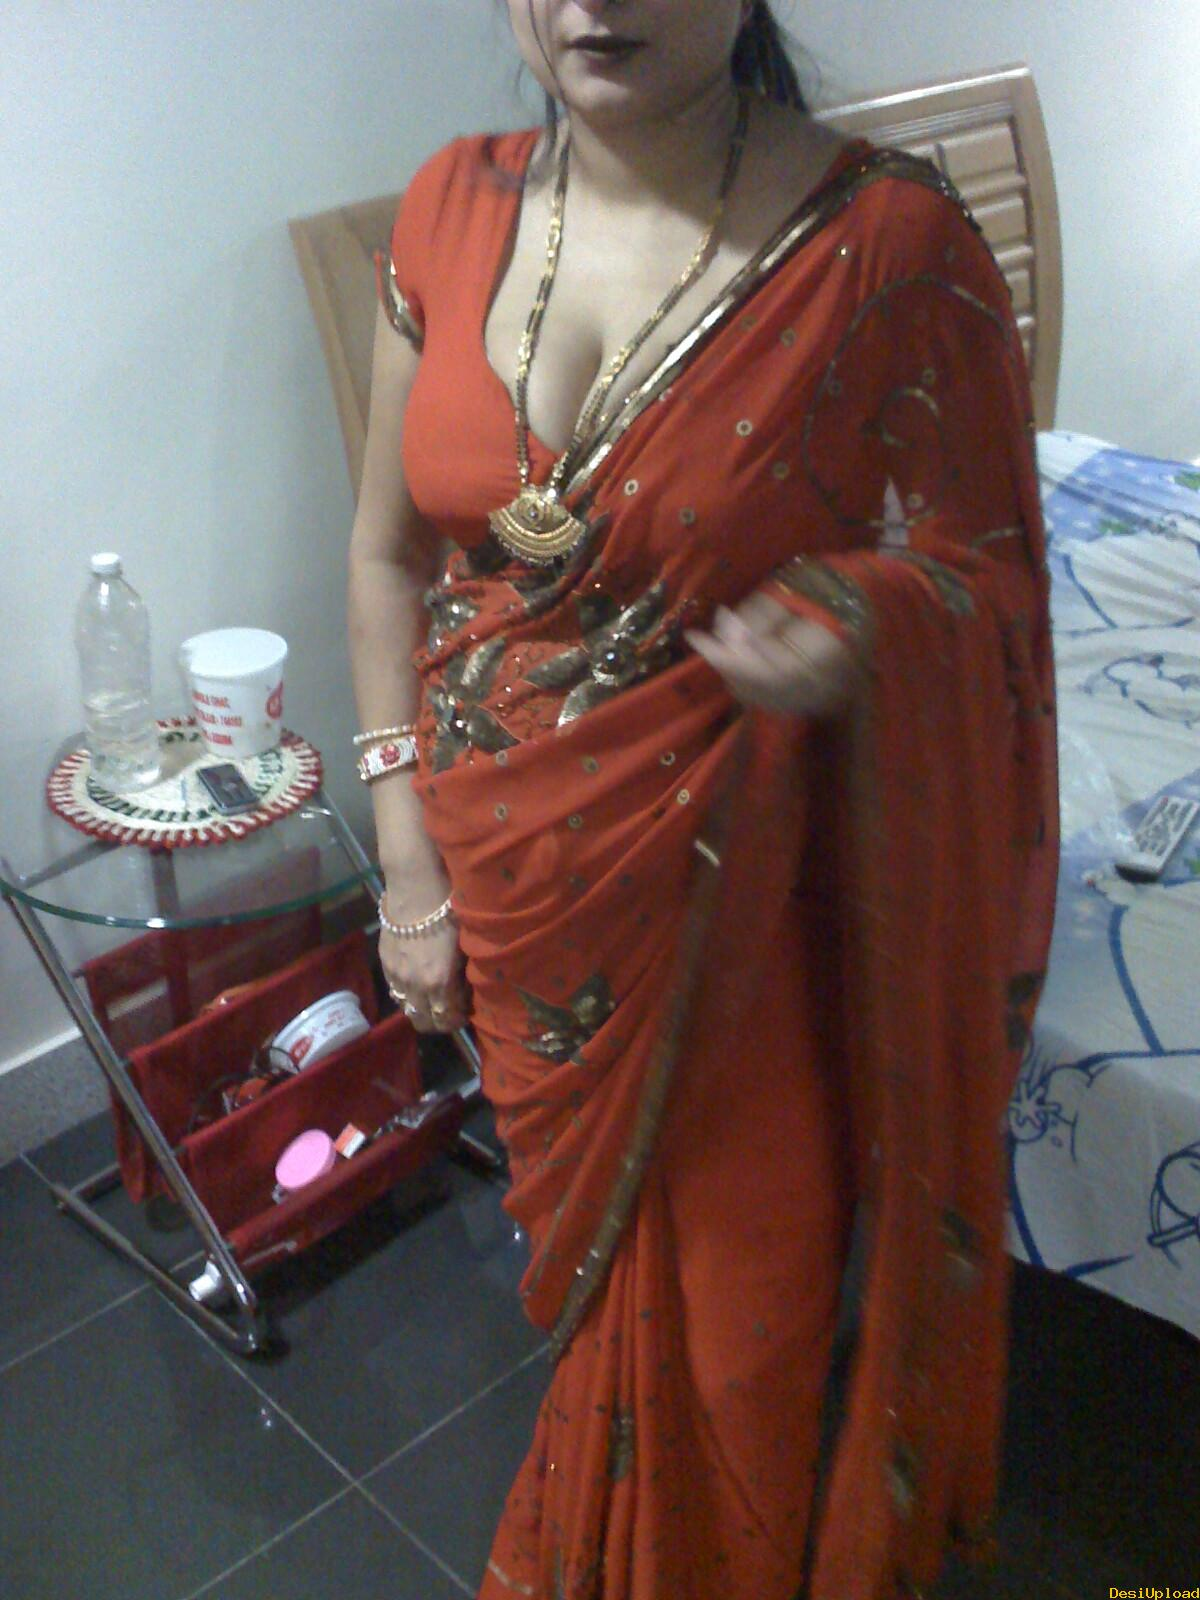 Desi husband load in wife mouth quot kitna ganda haiquot - 4 4